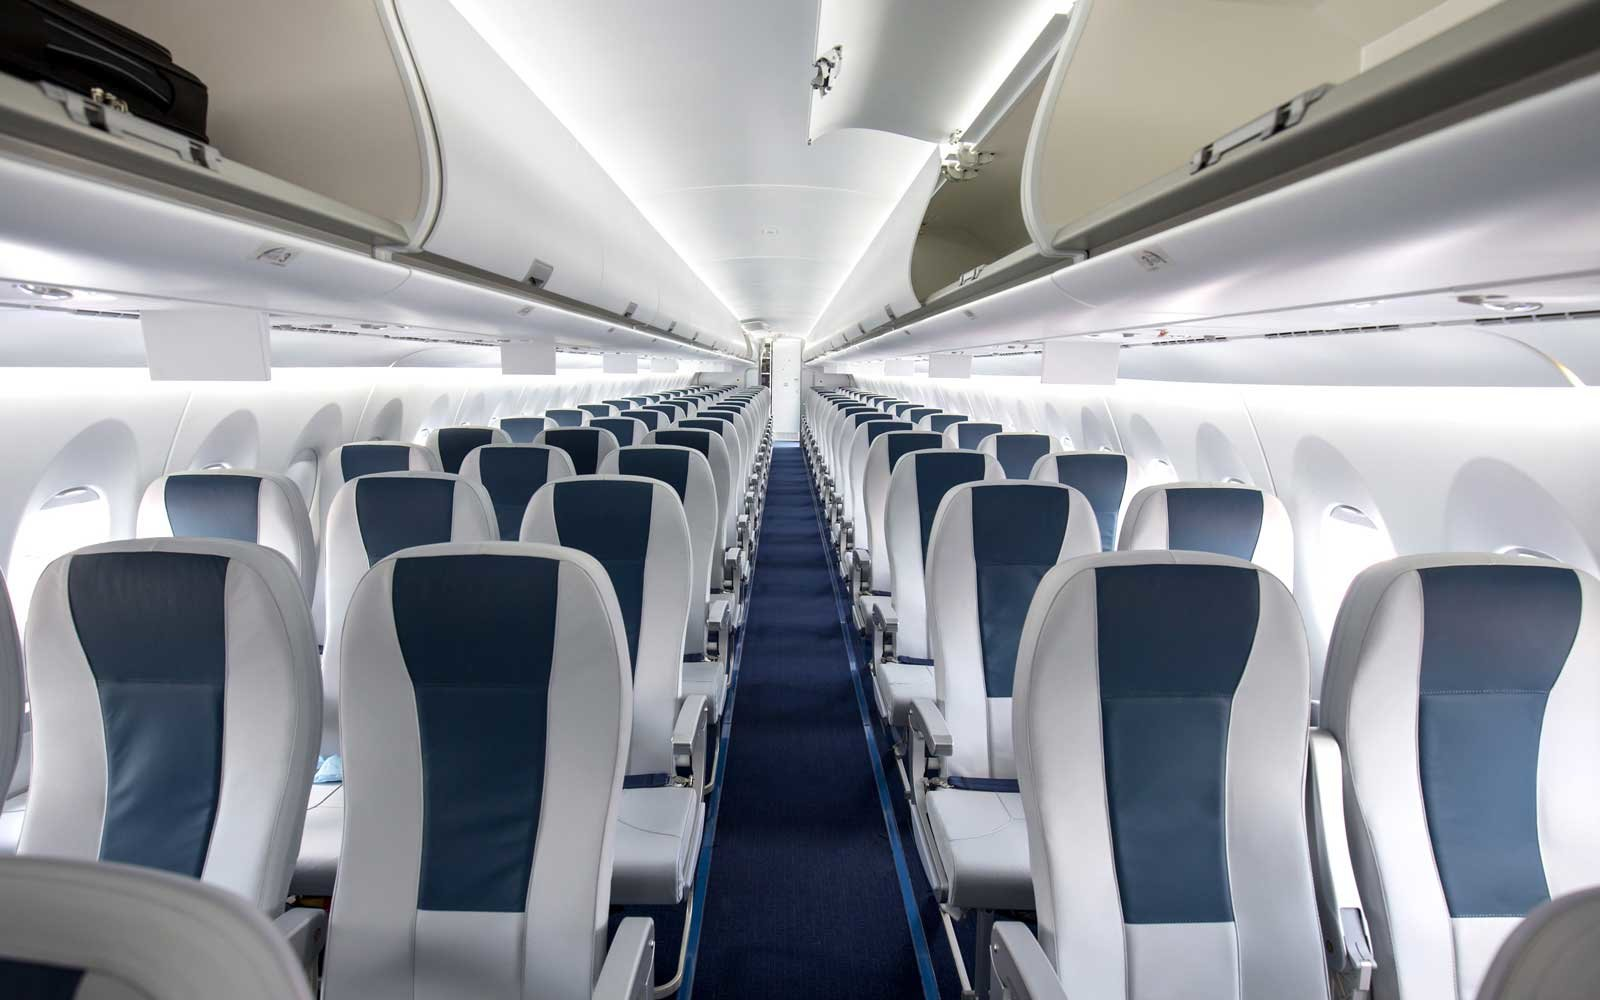 Why You Should Always Ask Your Flight Attendant Before Changing Seats